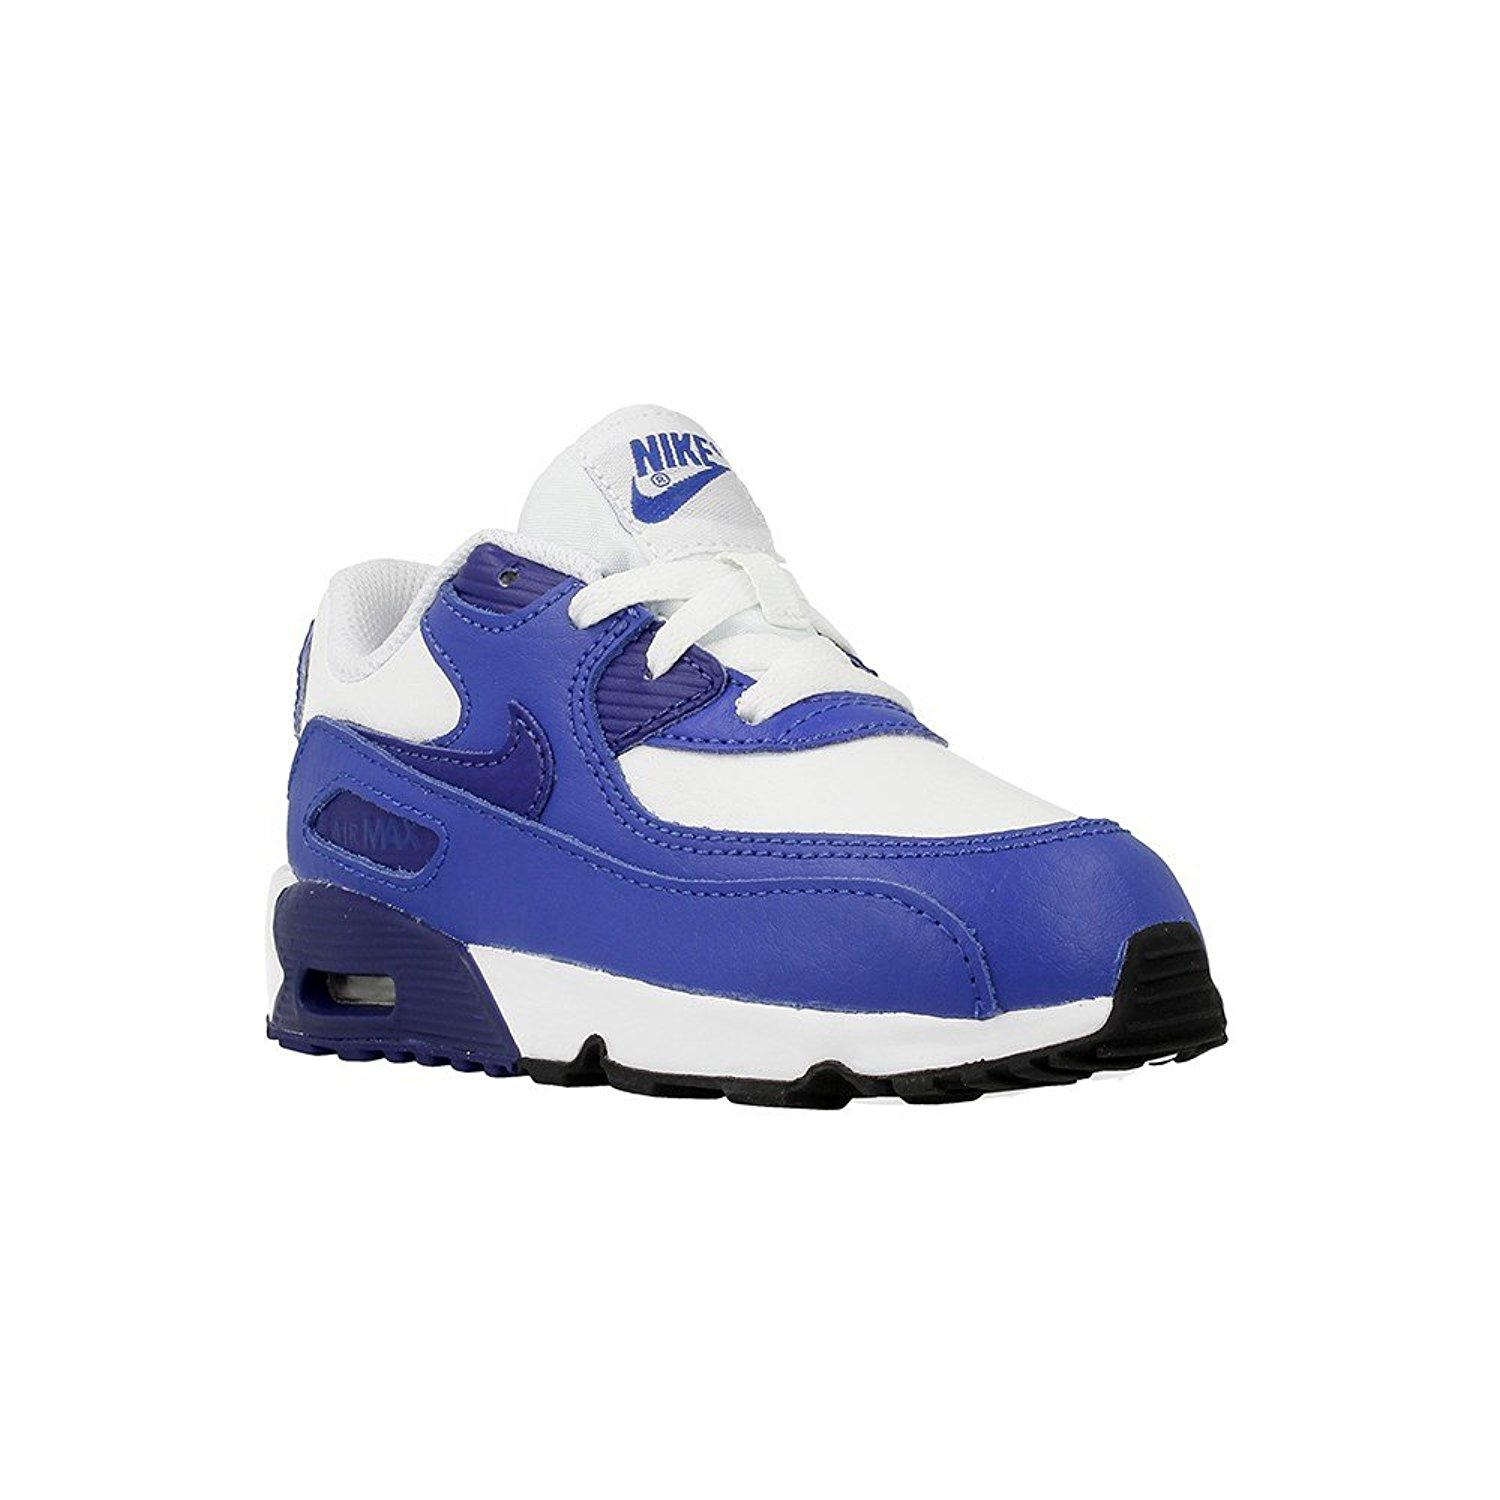 c5192cee9b9 Buy Nike NIKE AIR MAX 90 LTR (TD) boys running-shoes 833416 in Cheap ...